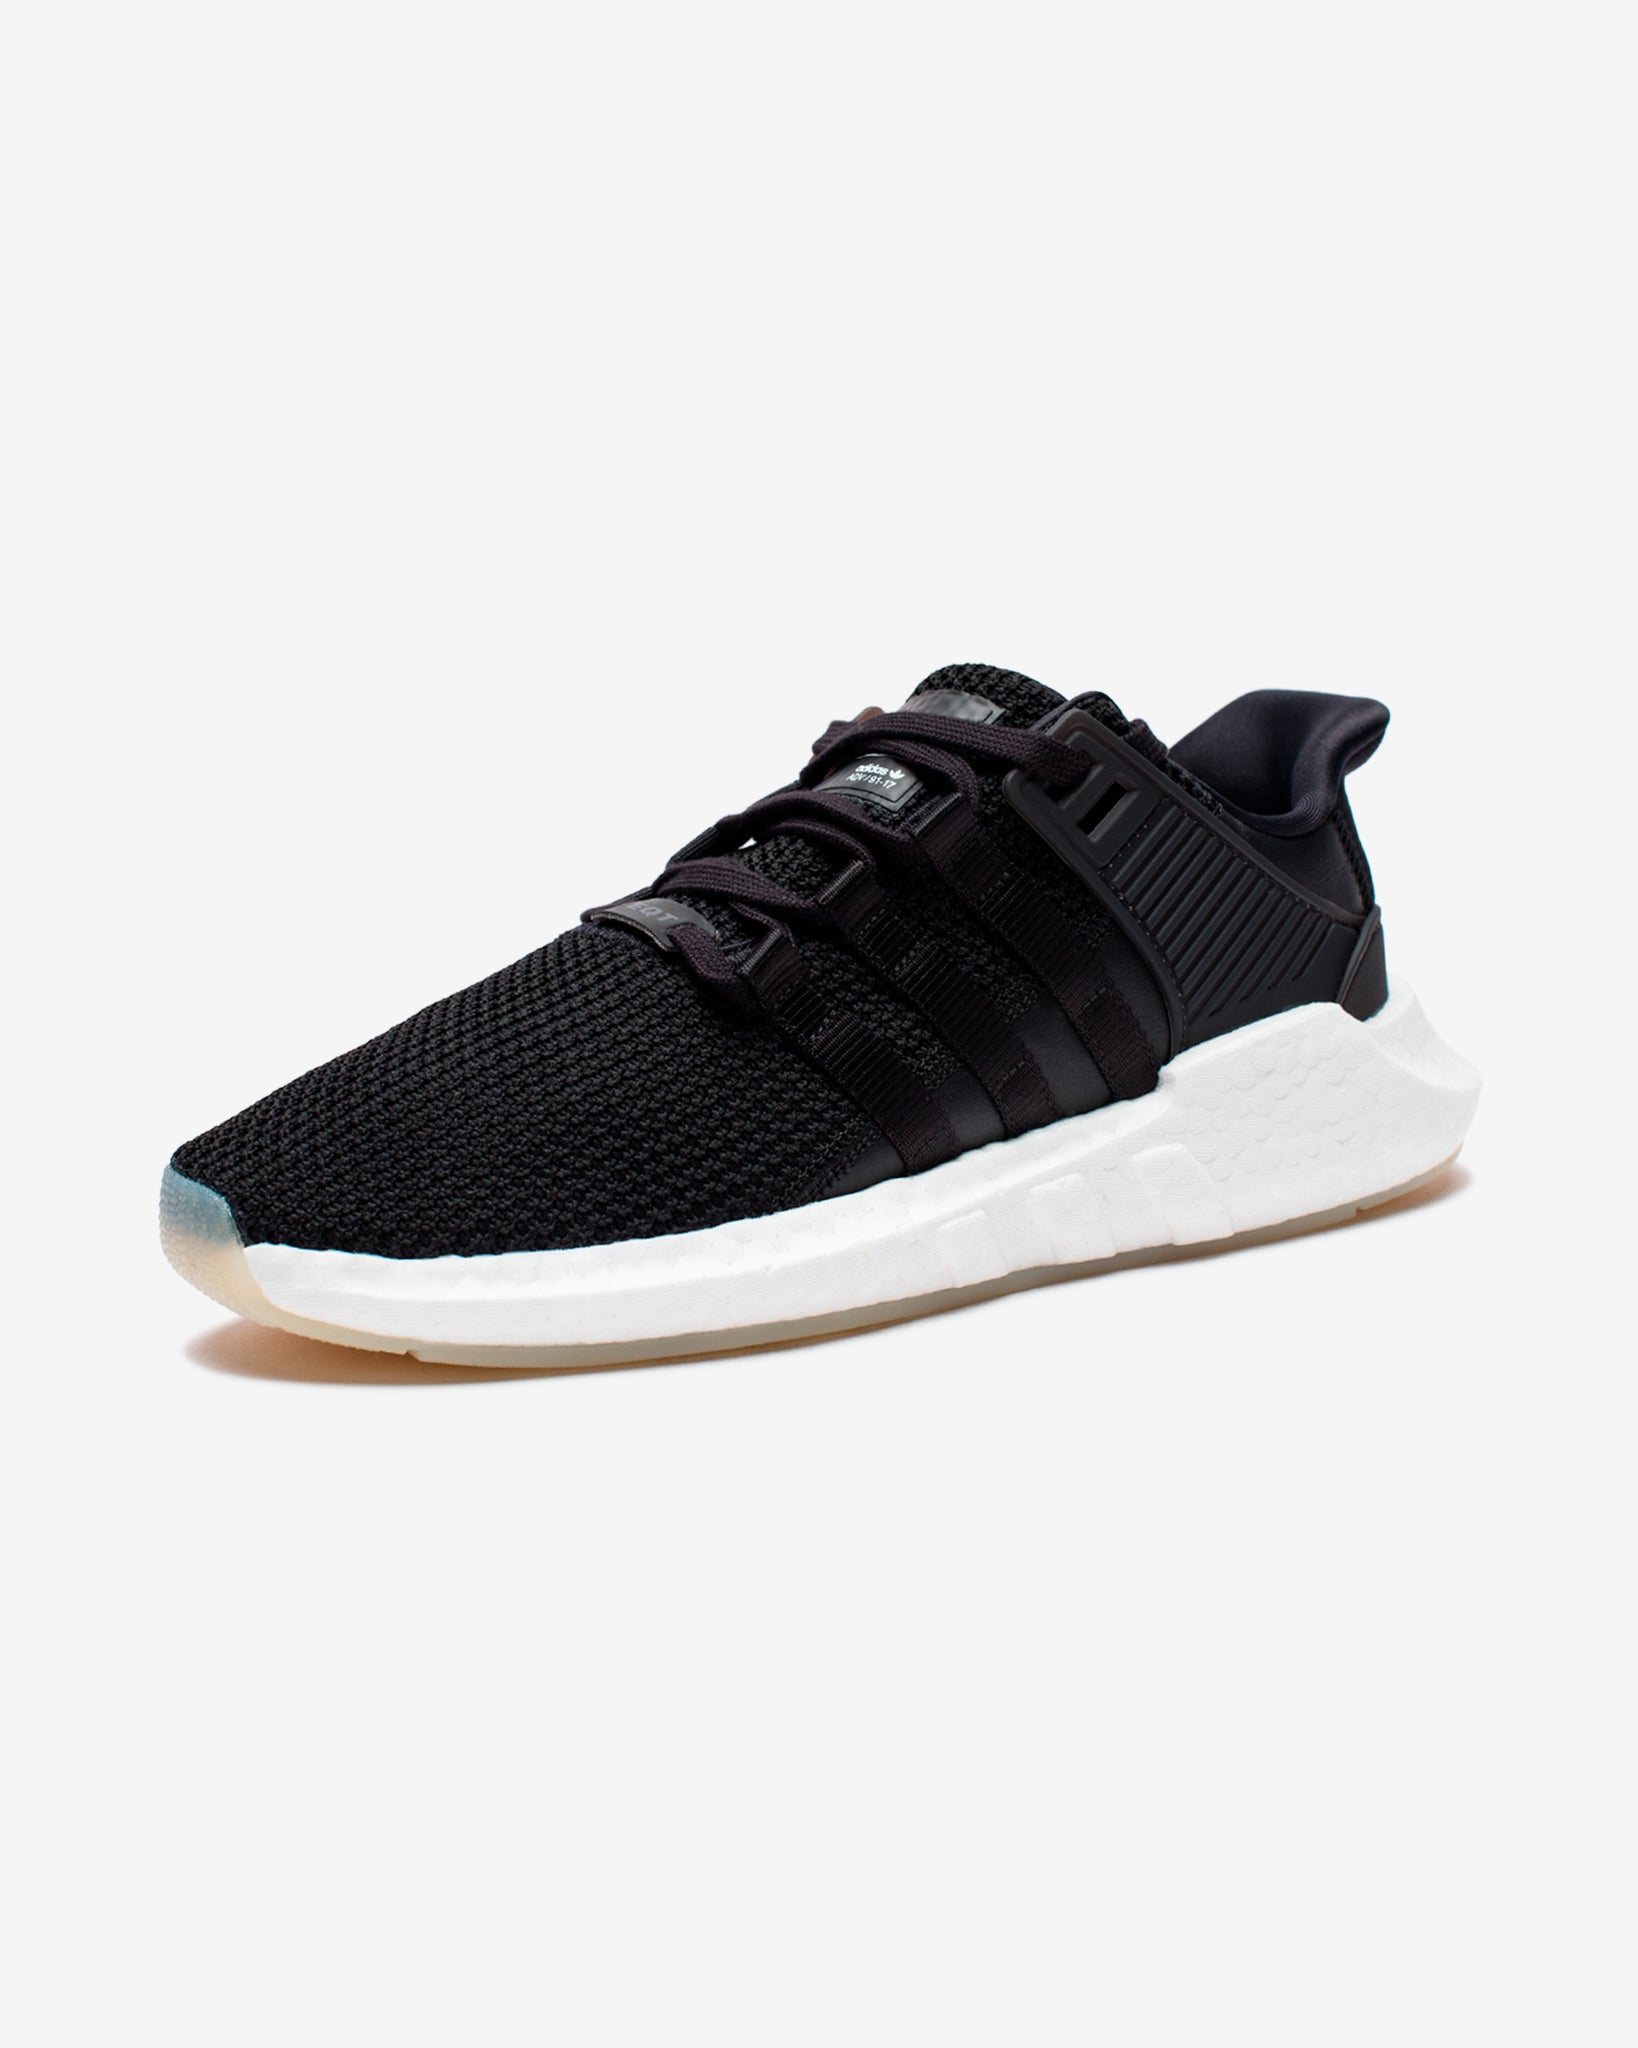 EQT SUPPORT 93/17 - BLACK/WHITE